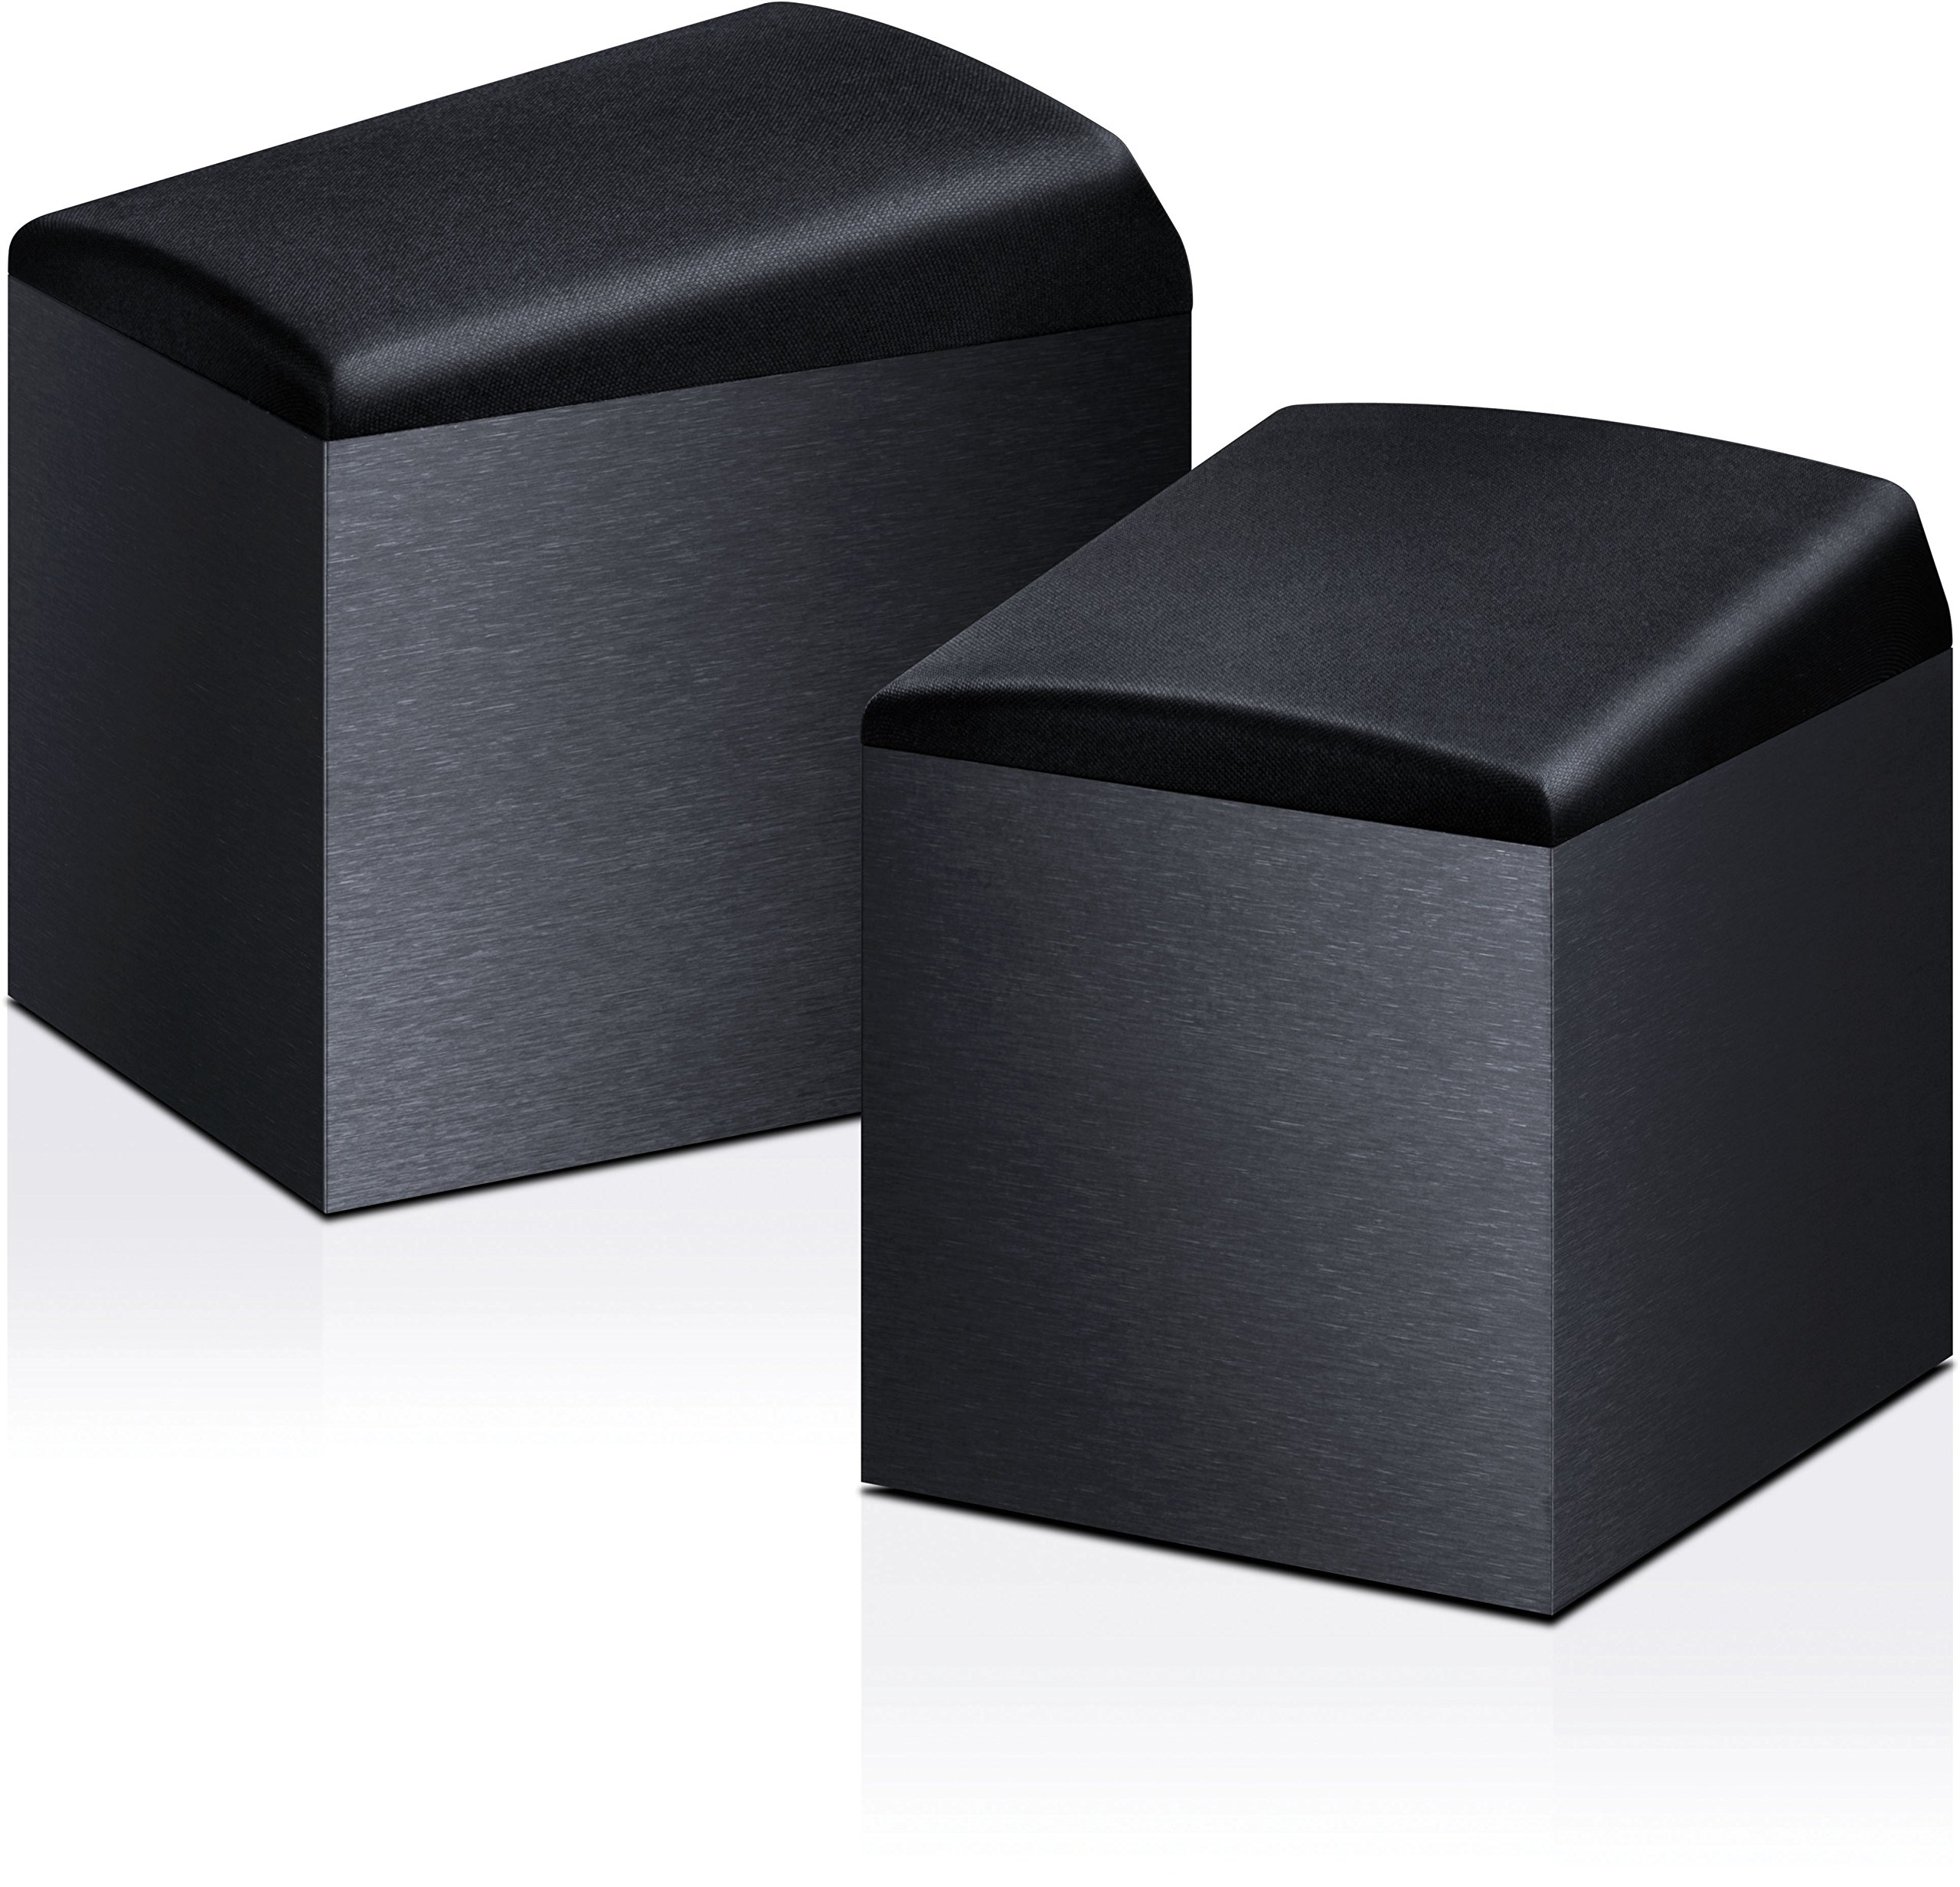 Onkyo SKH-410 Dolby Atmos-Enabled Speaker System (Set of 2) by Onkyo